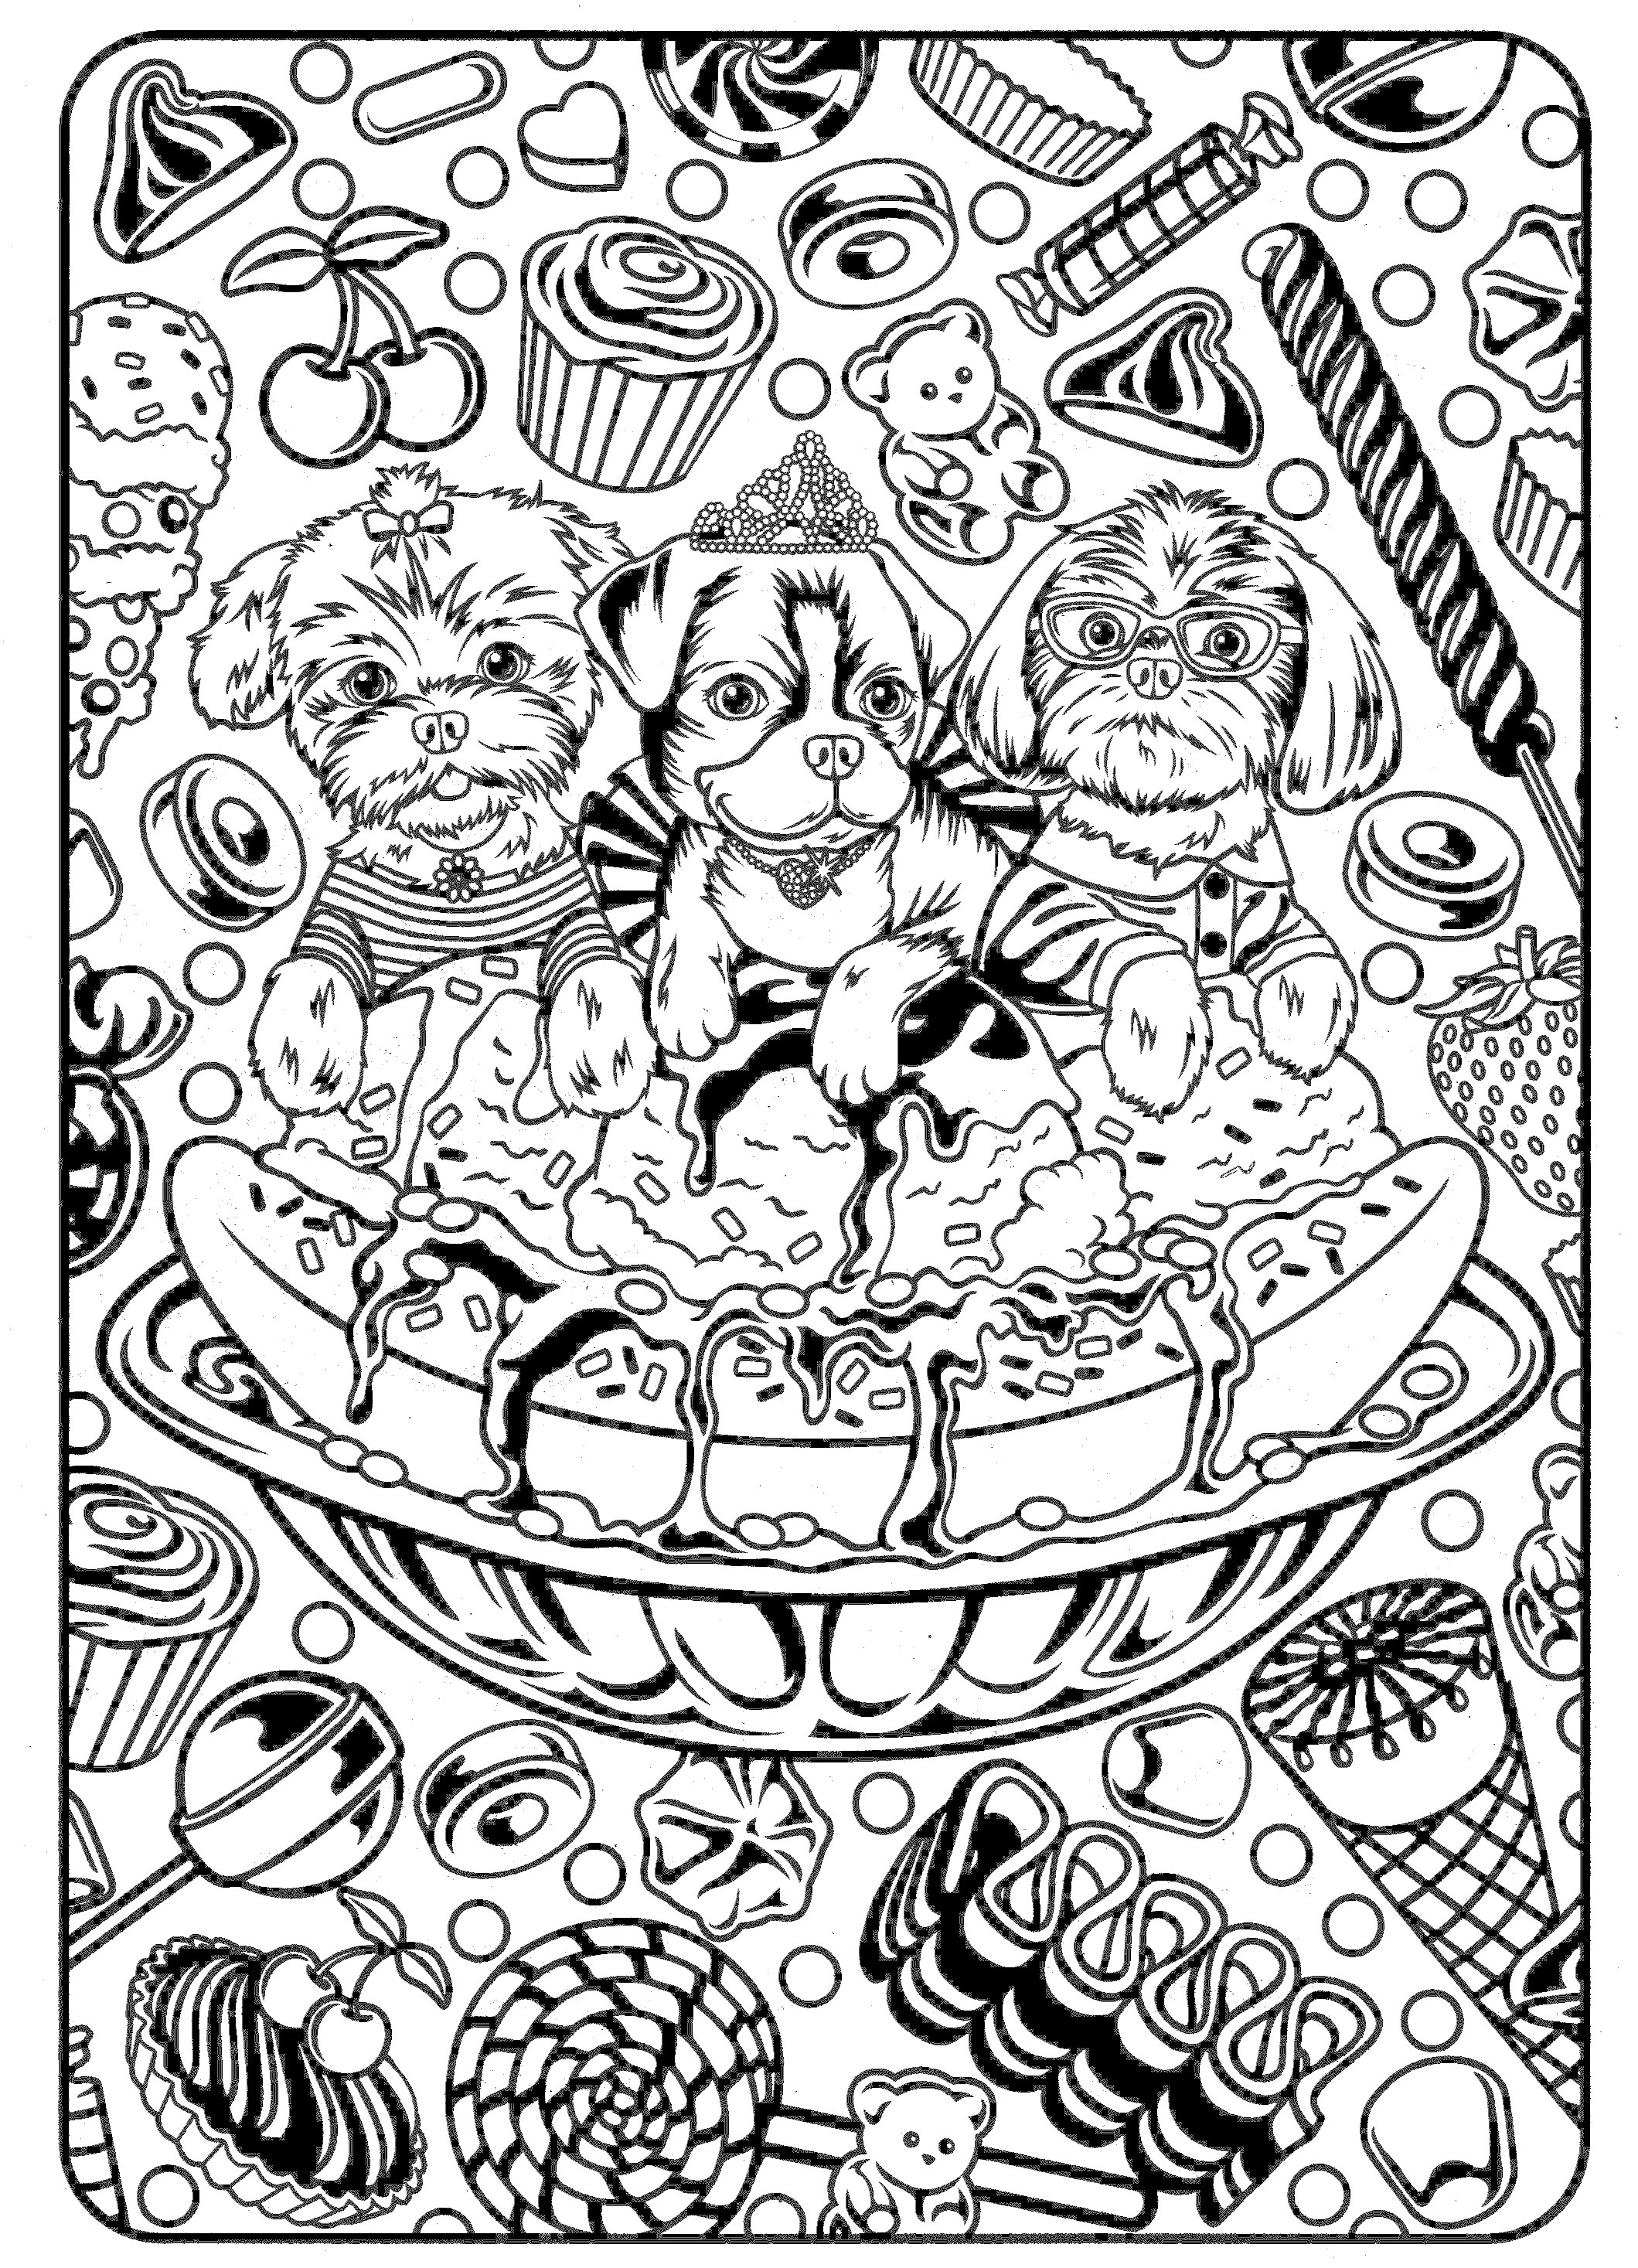 coloring pages for print cute coloring pages best coloring pages for kids coloring print pages for